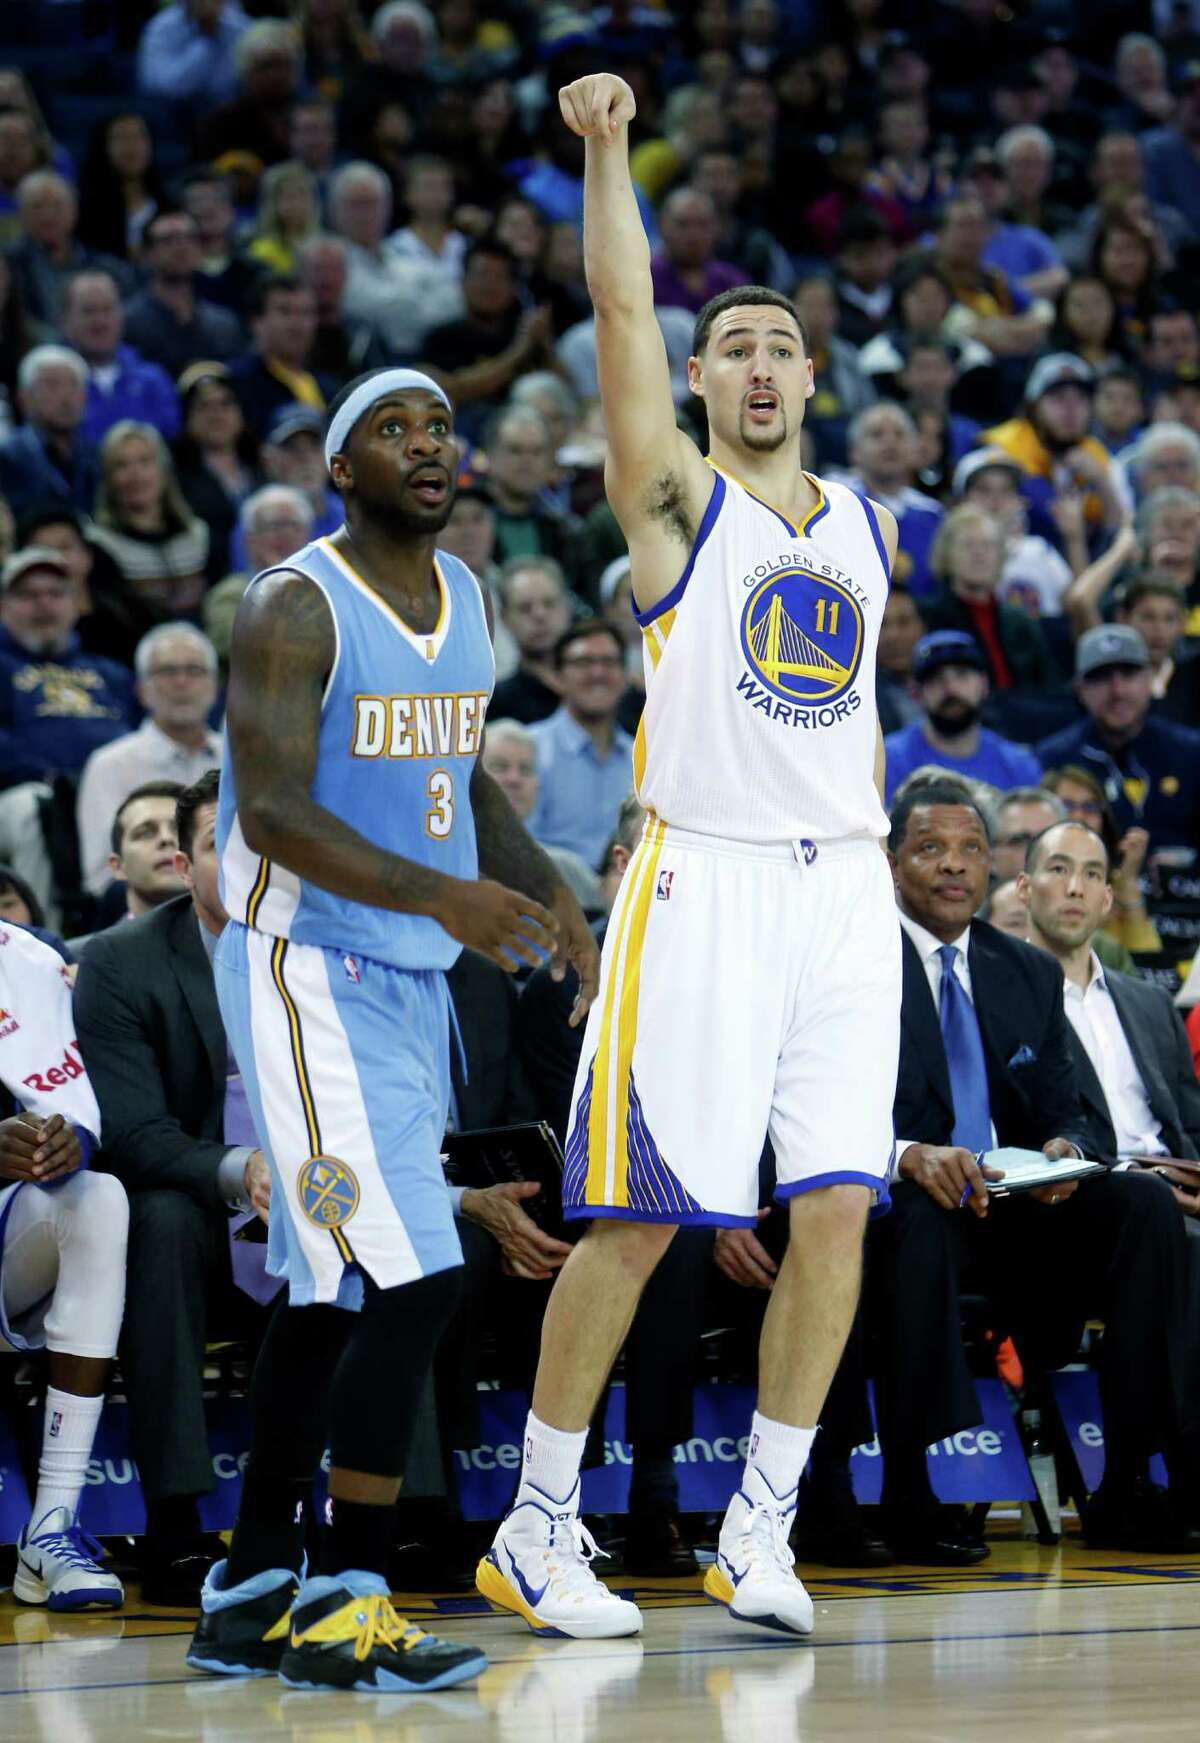 Klay Thompson signals watches his successGolden State Warriors' Klay Thompson and Denver Nuggets' Ty Lawson watch Thompson's successful 3-pointer in 2nd quarter during NBA game at Oracle Arena in Oakland, Calif. on Monday, January 19, 2015.